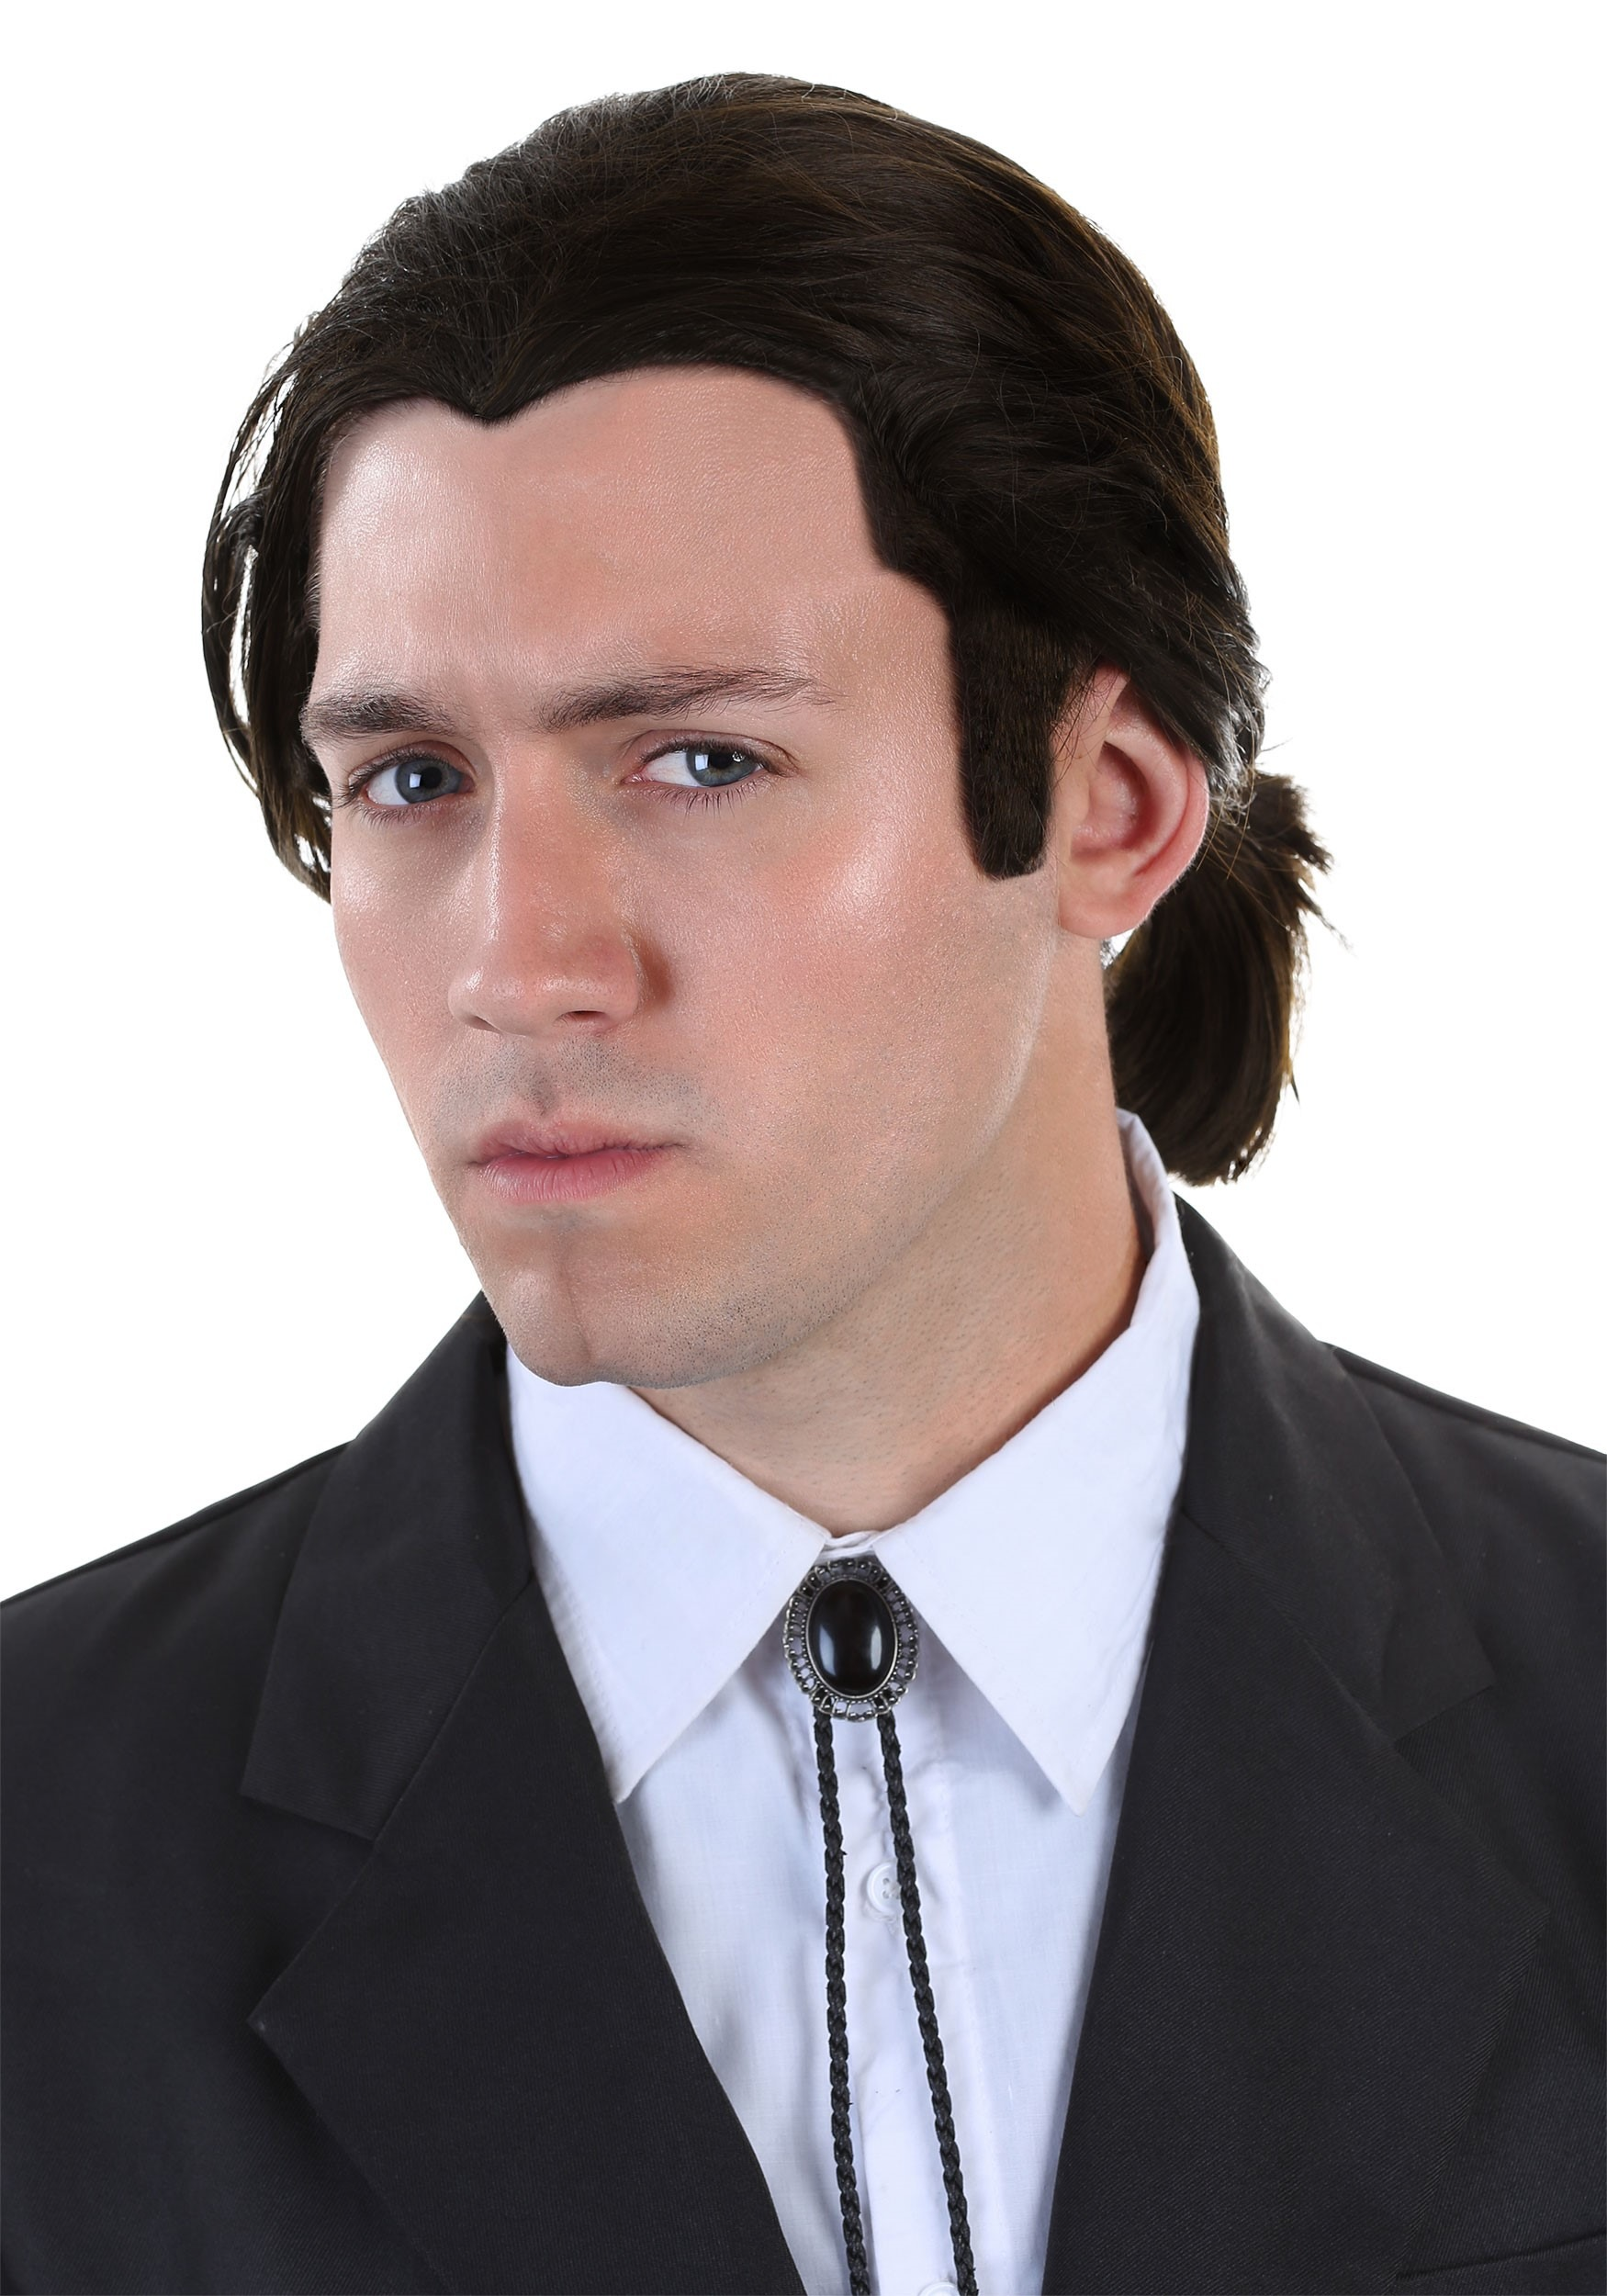 Vincent vega wig and bolo tie set from pulp fiction alt 1